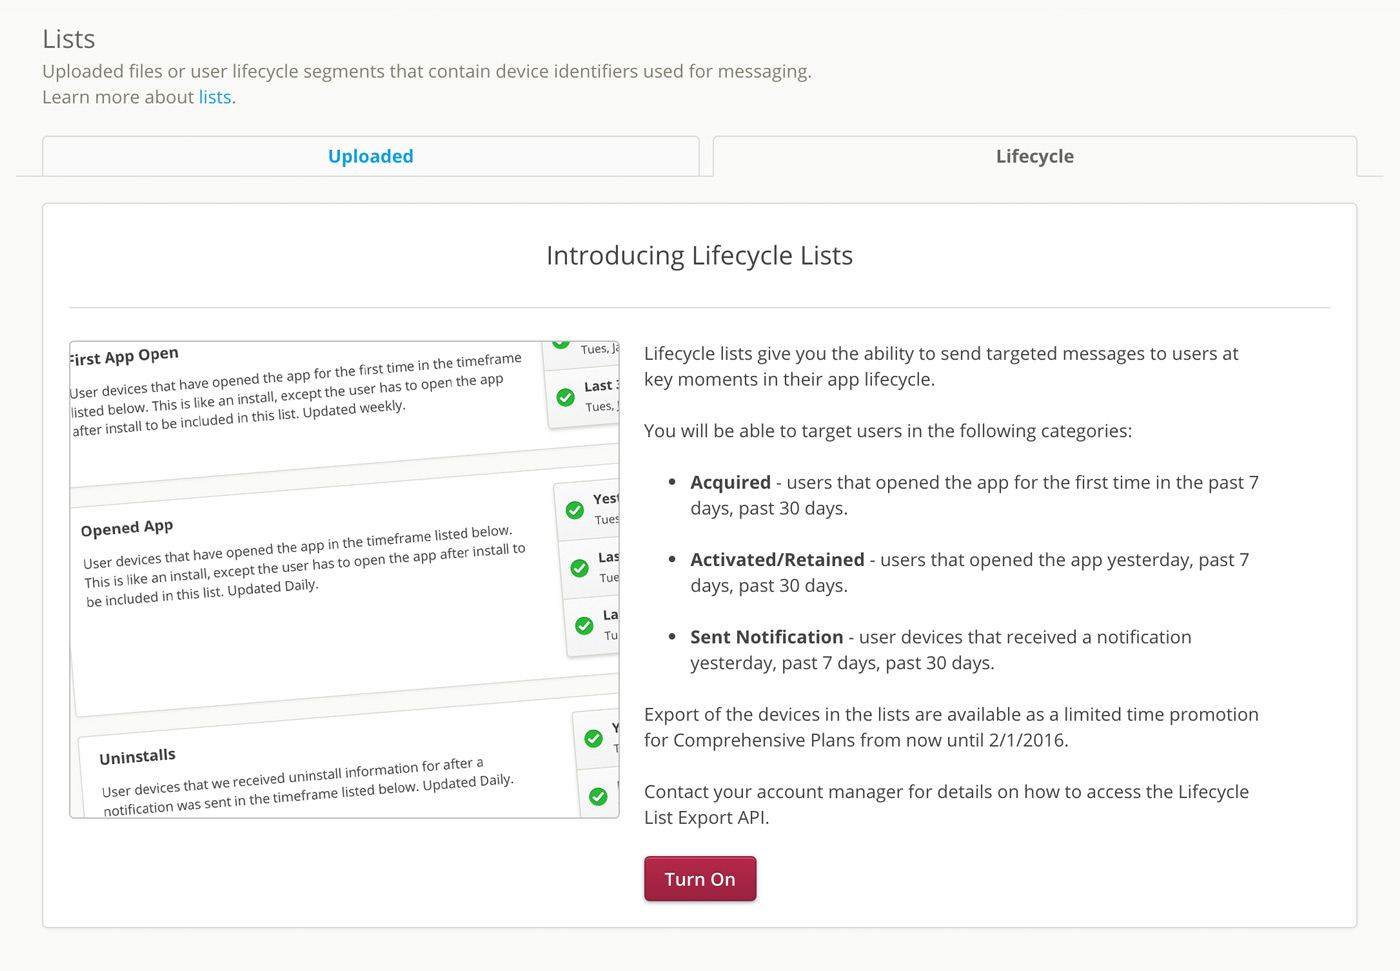 Engage: Lifecycle Lists